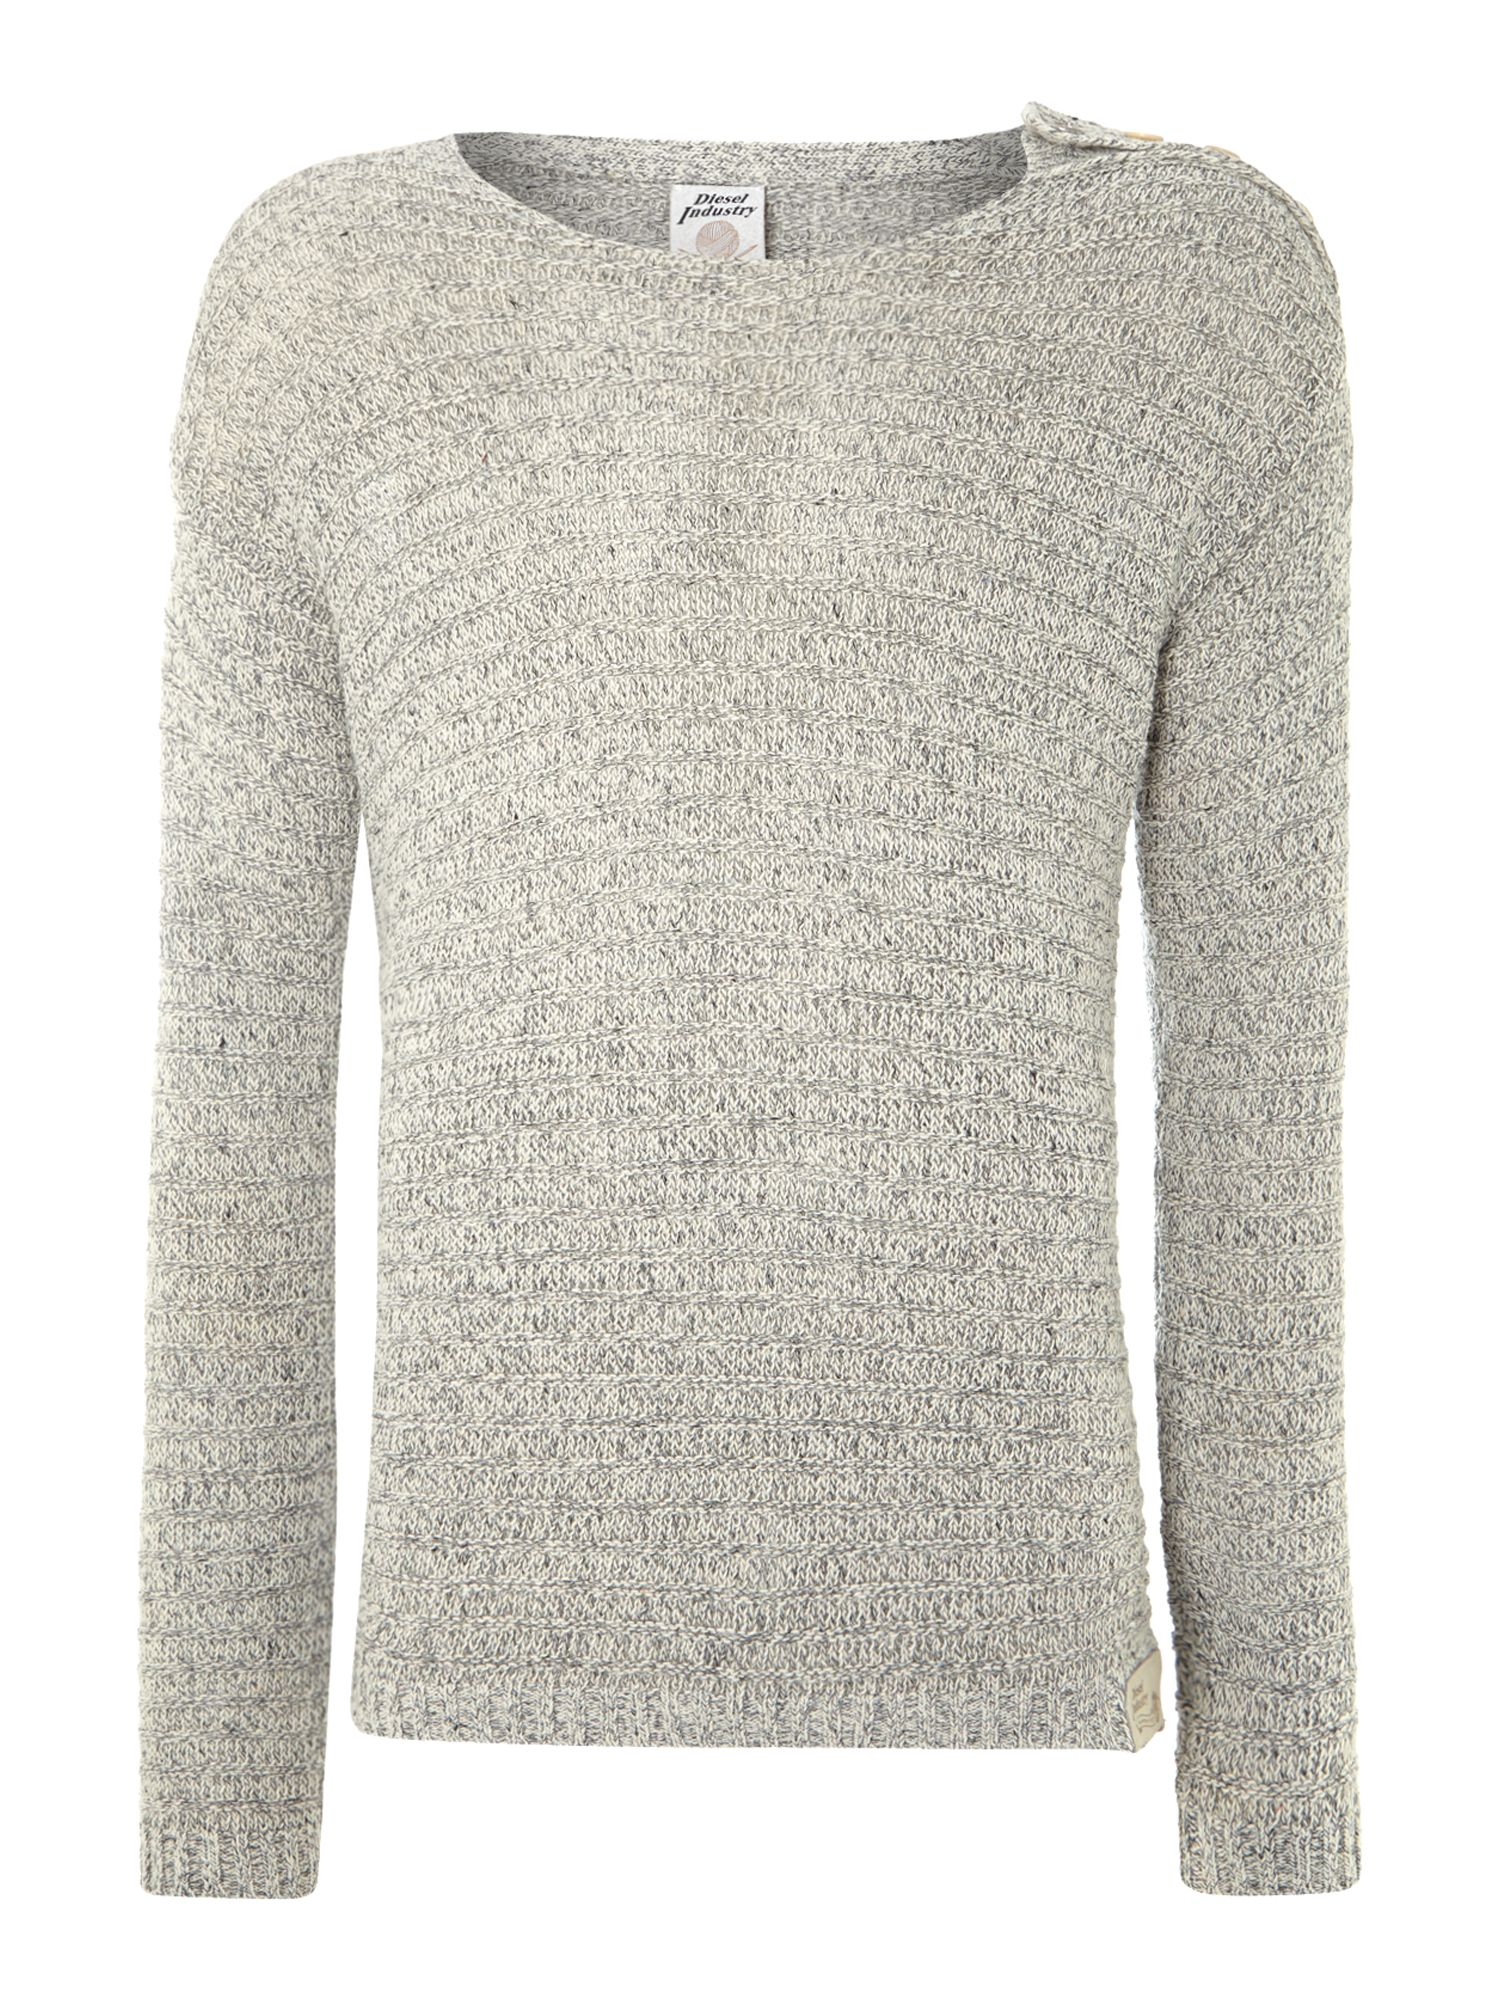 Linen mix knitted sweatshirt